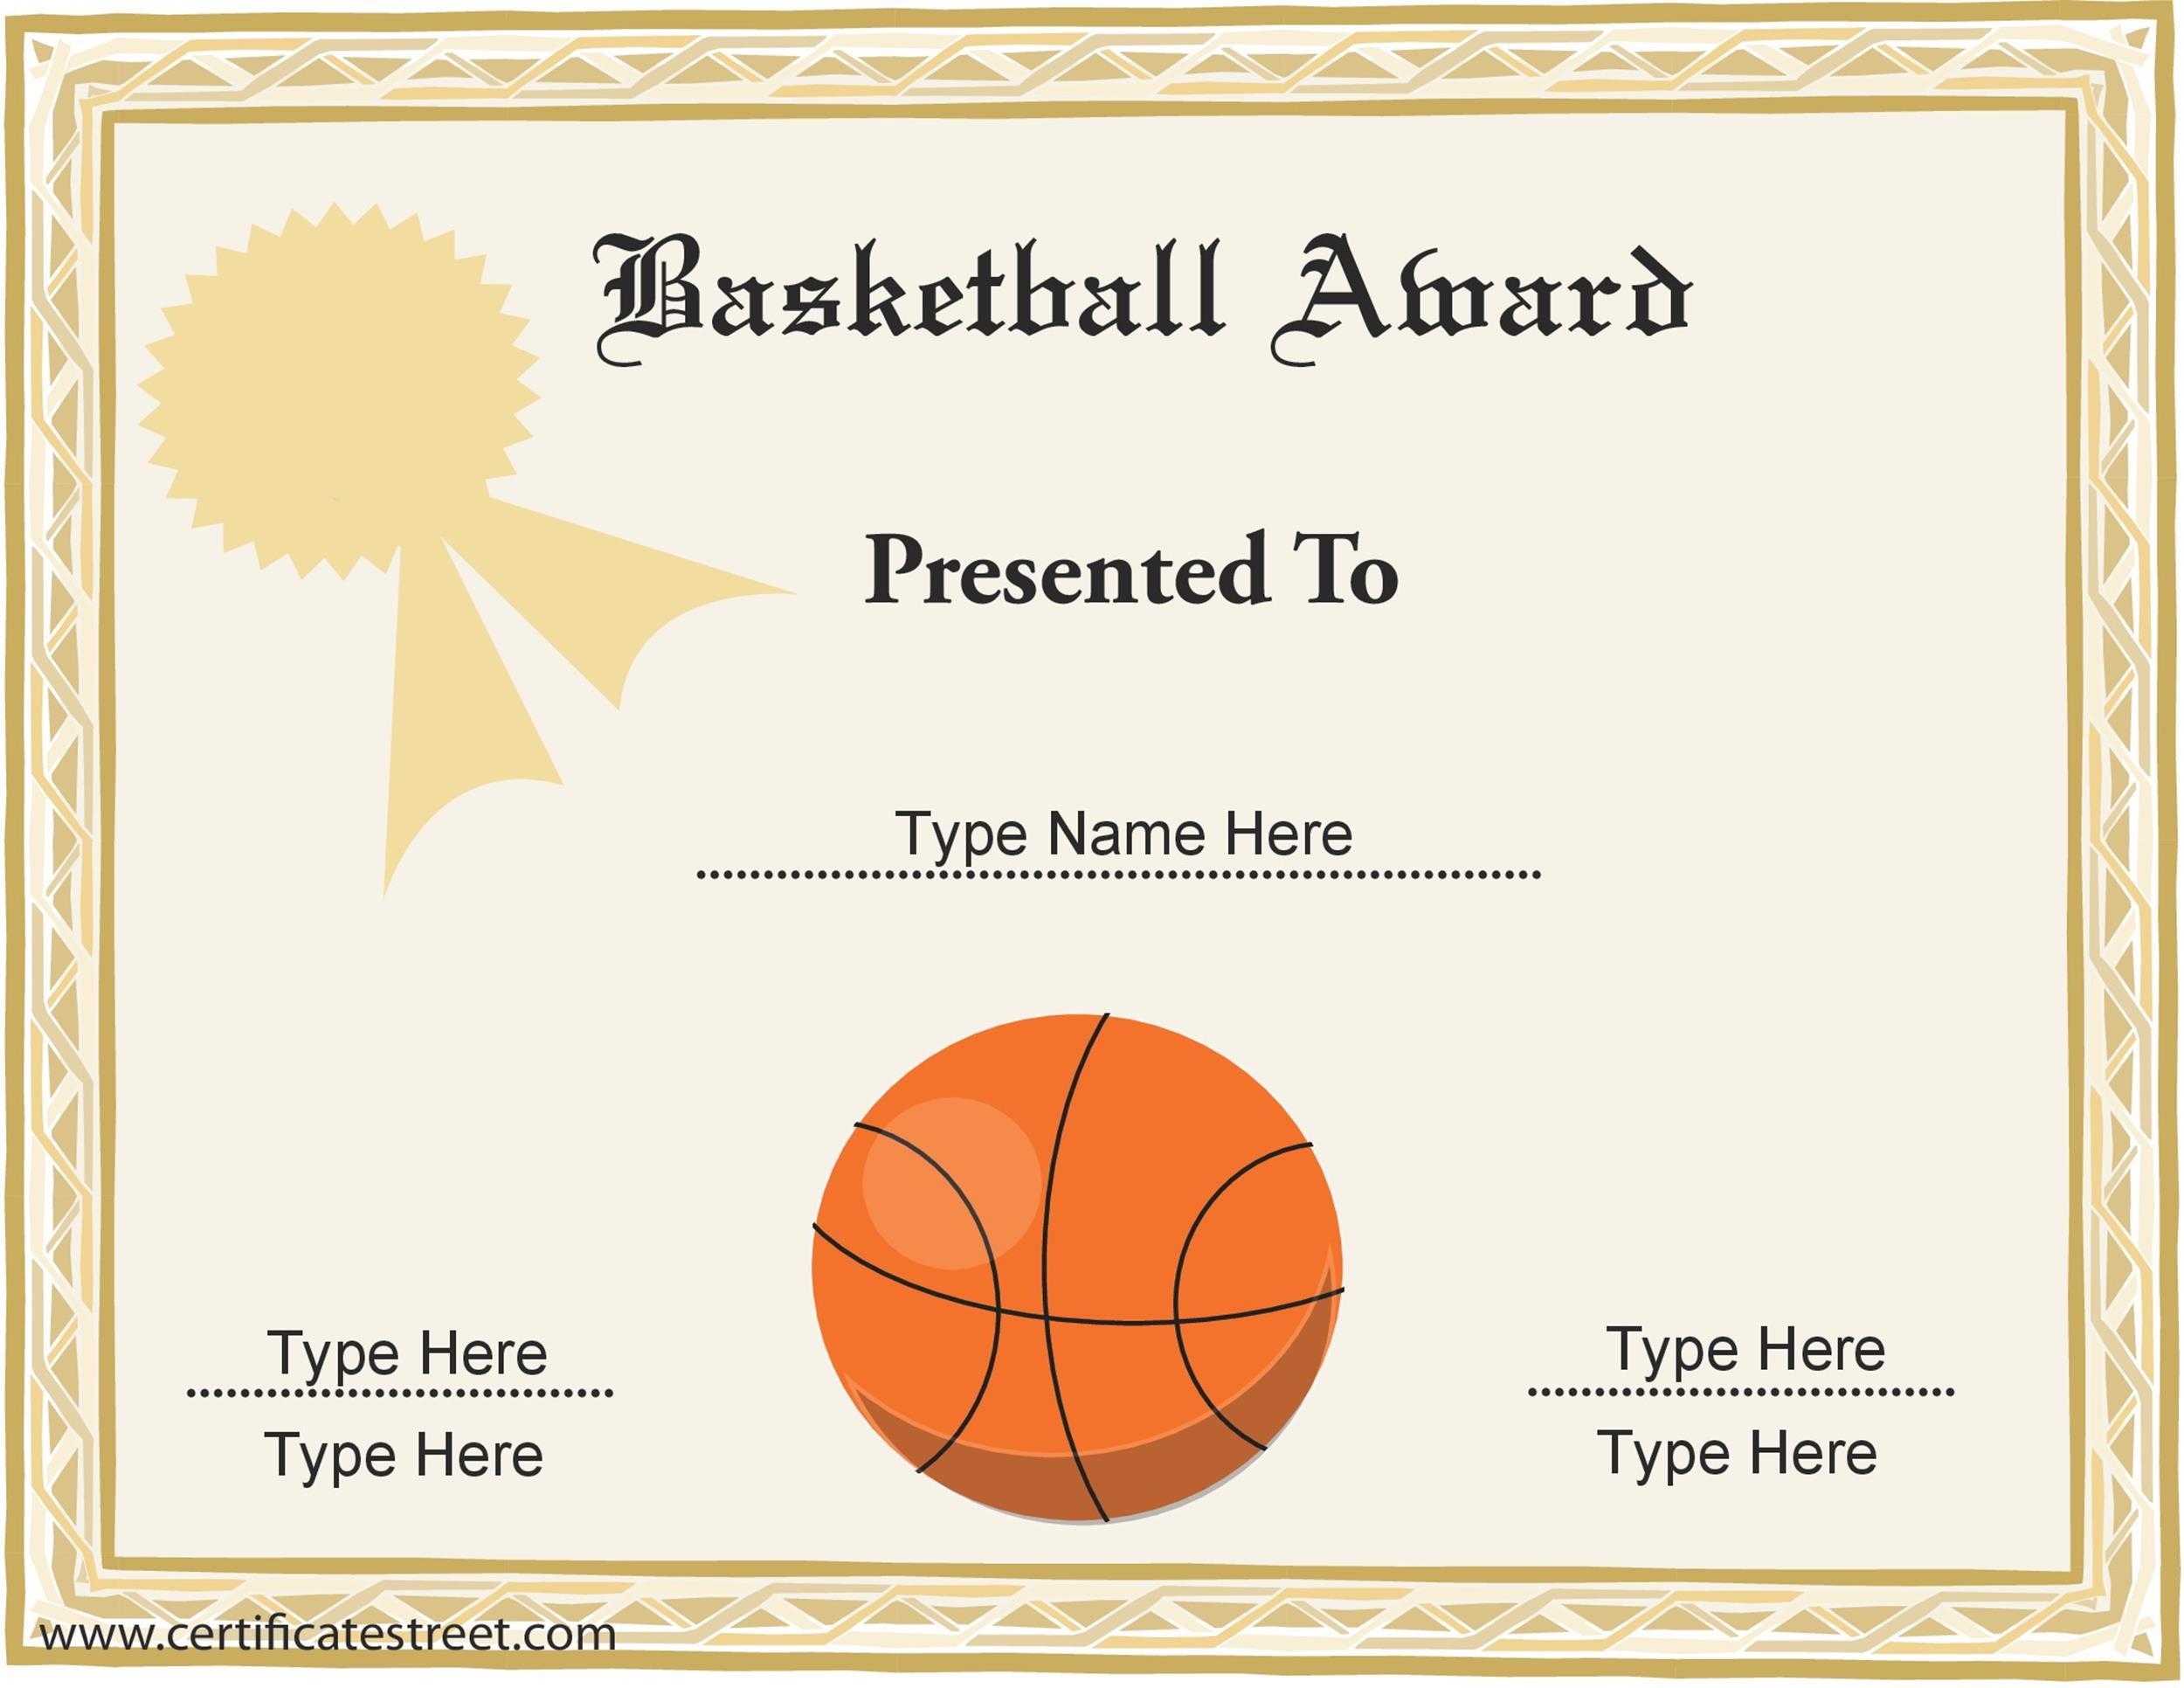 50 Amazing Award Certificate Templates - Template Lab - Free Award Templates